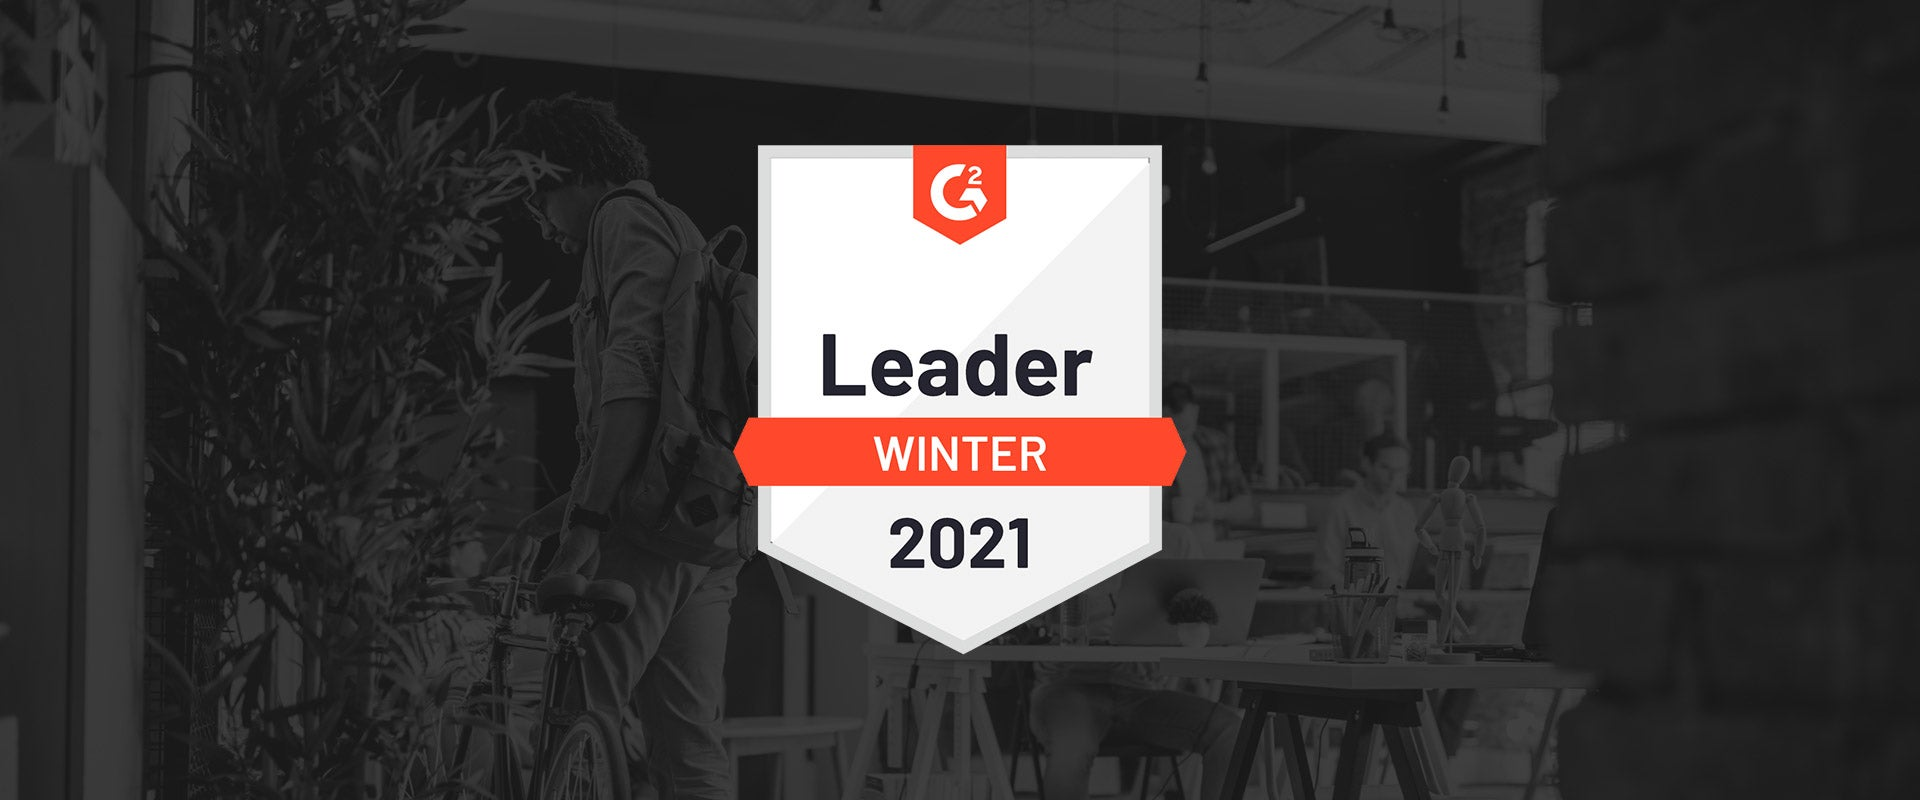 Kentico Kontent Positioned as a Leader in G2 Grid for Headless CMS